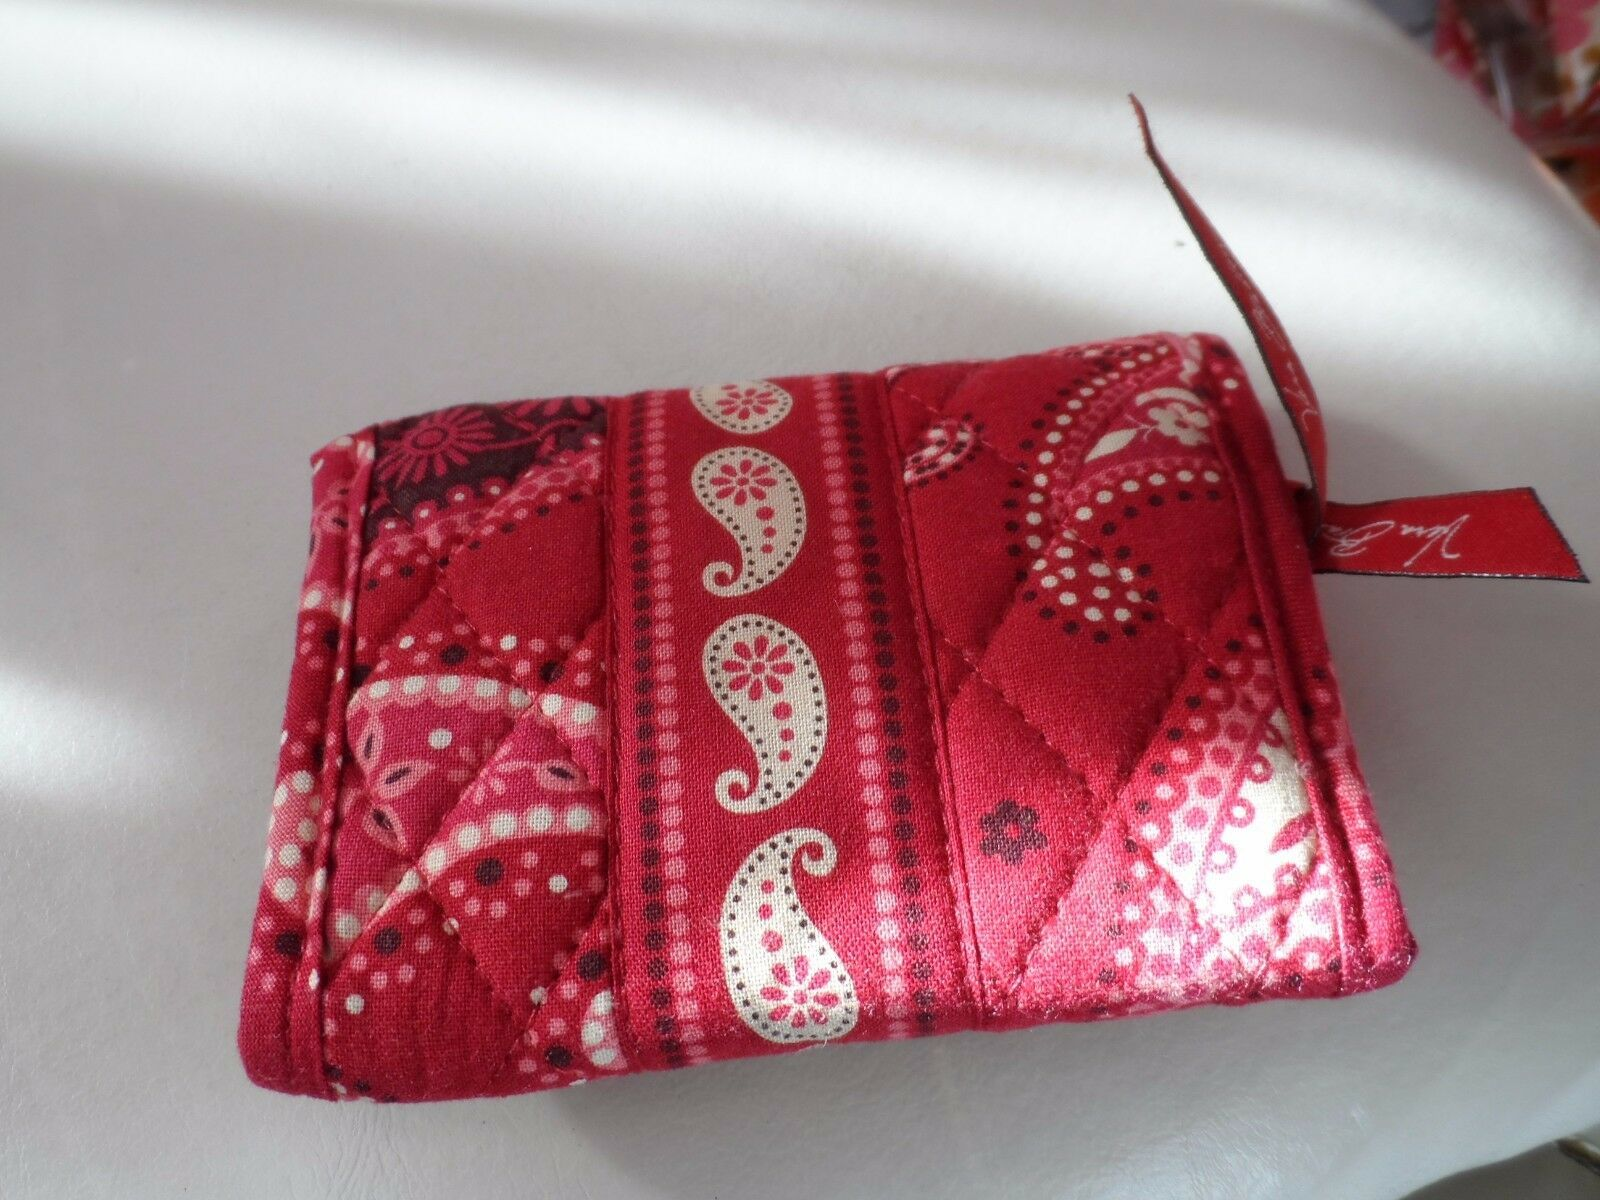 Vera Bradley trifold wallet in Mesa Red retired pattern